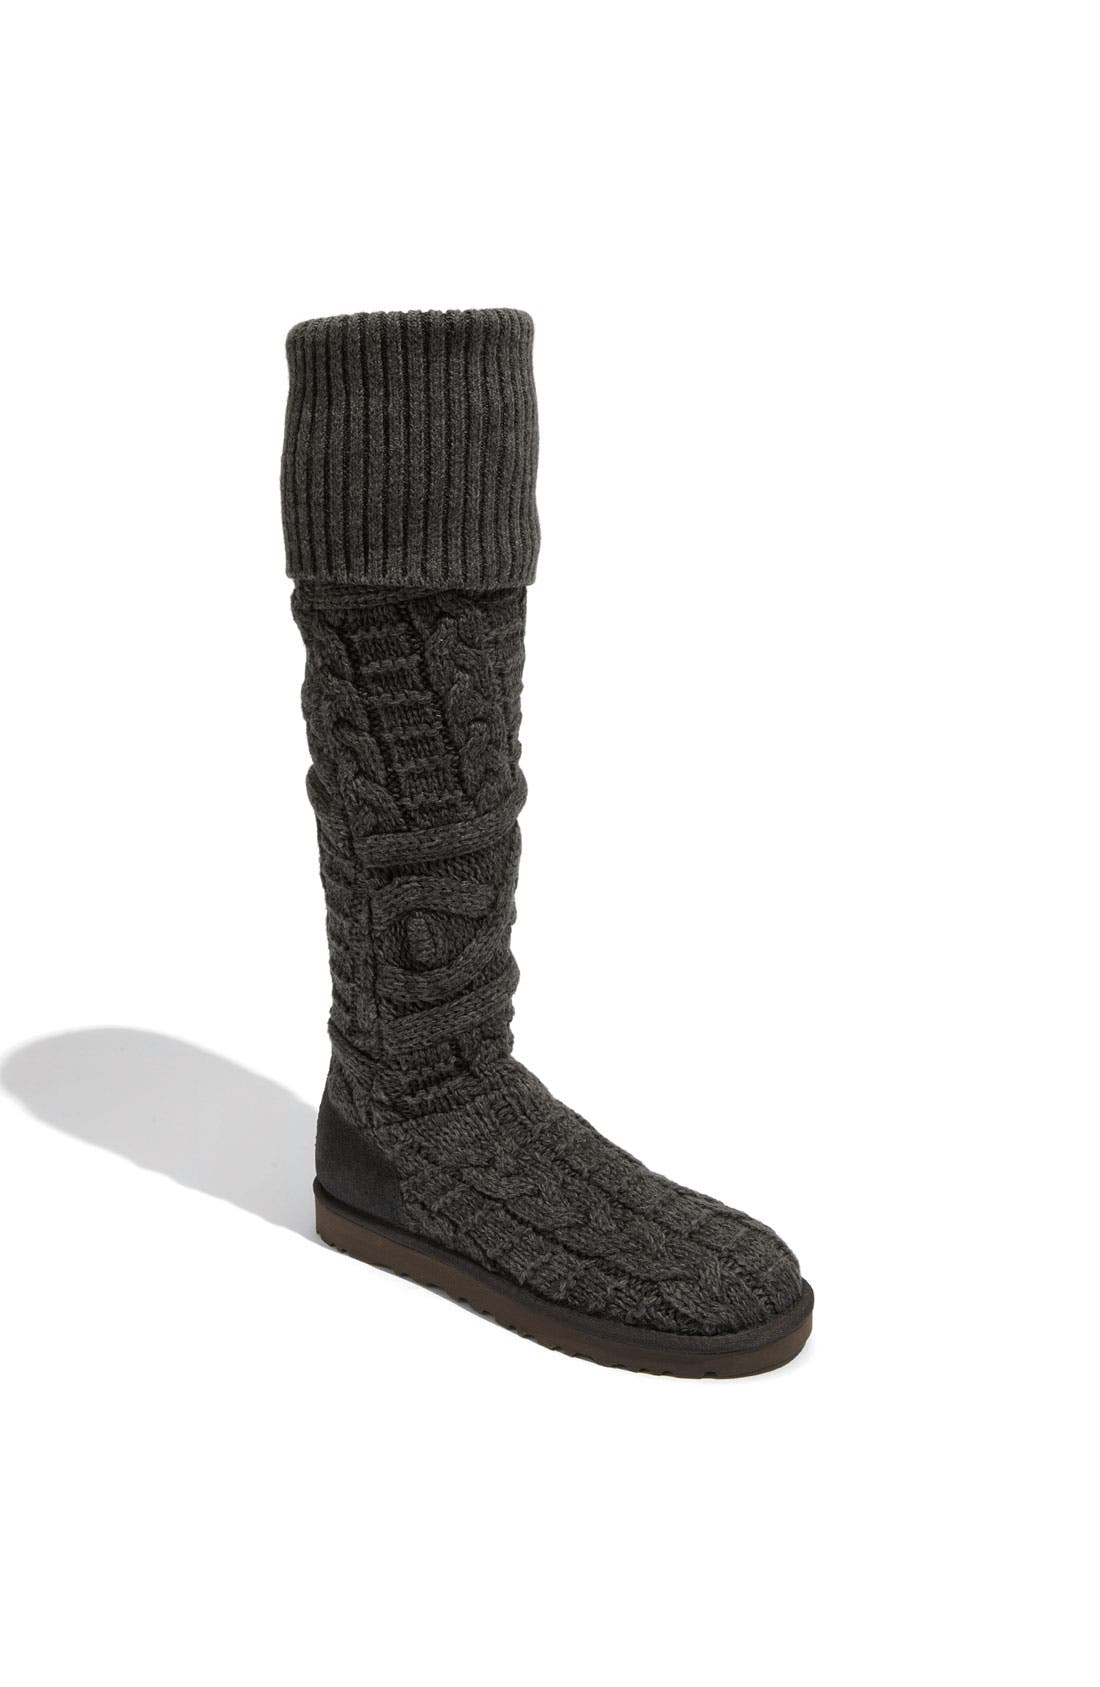 Main Image - UGG® Australia 'Twisted Cable' Over the Knee Boot